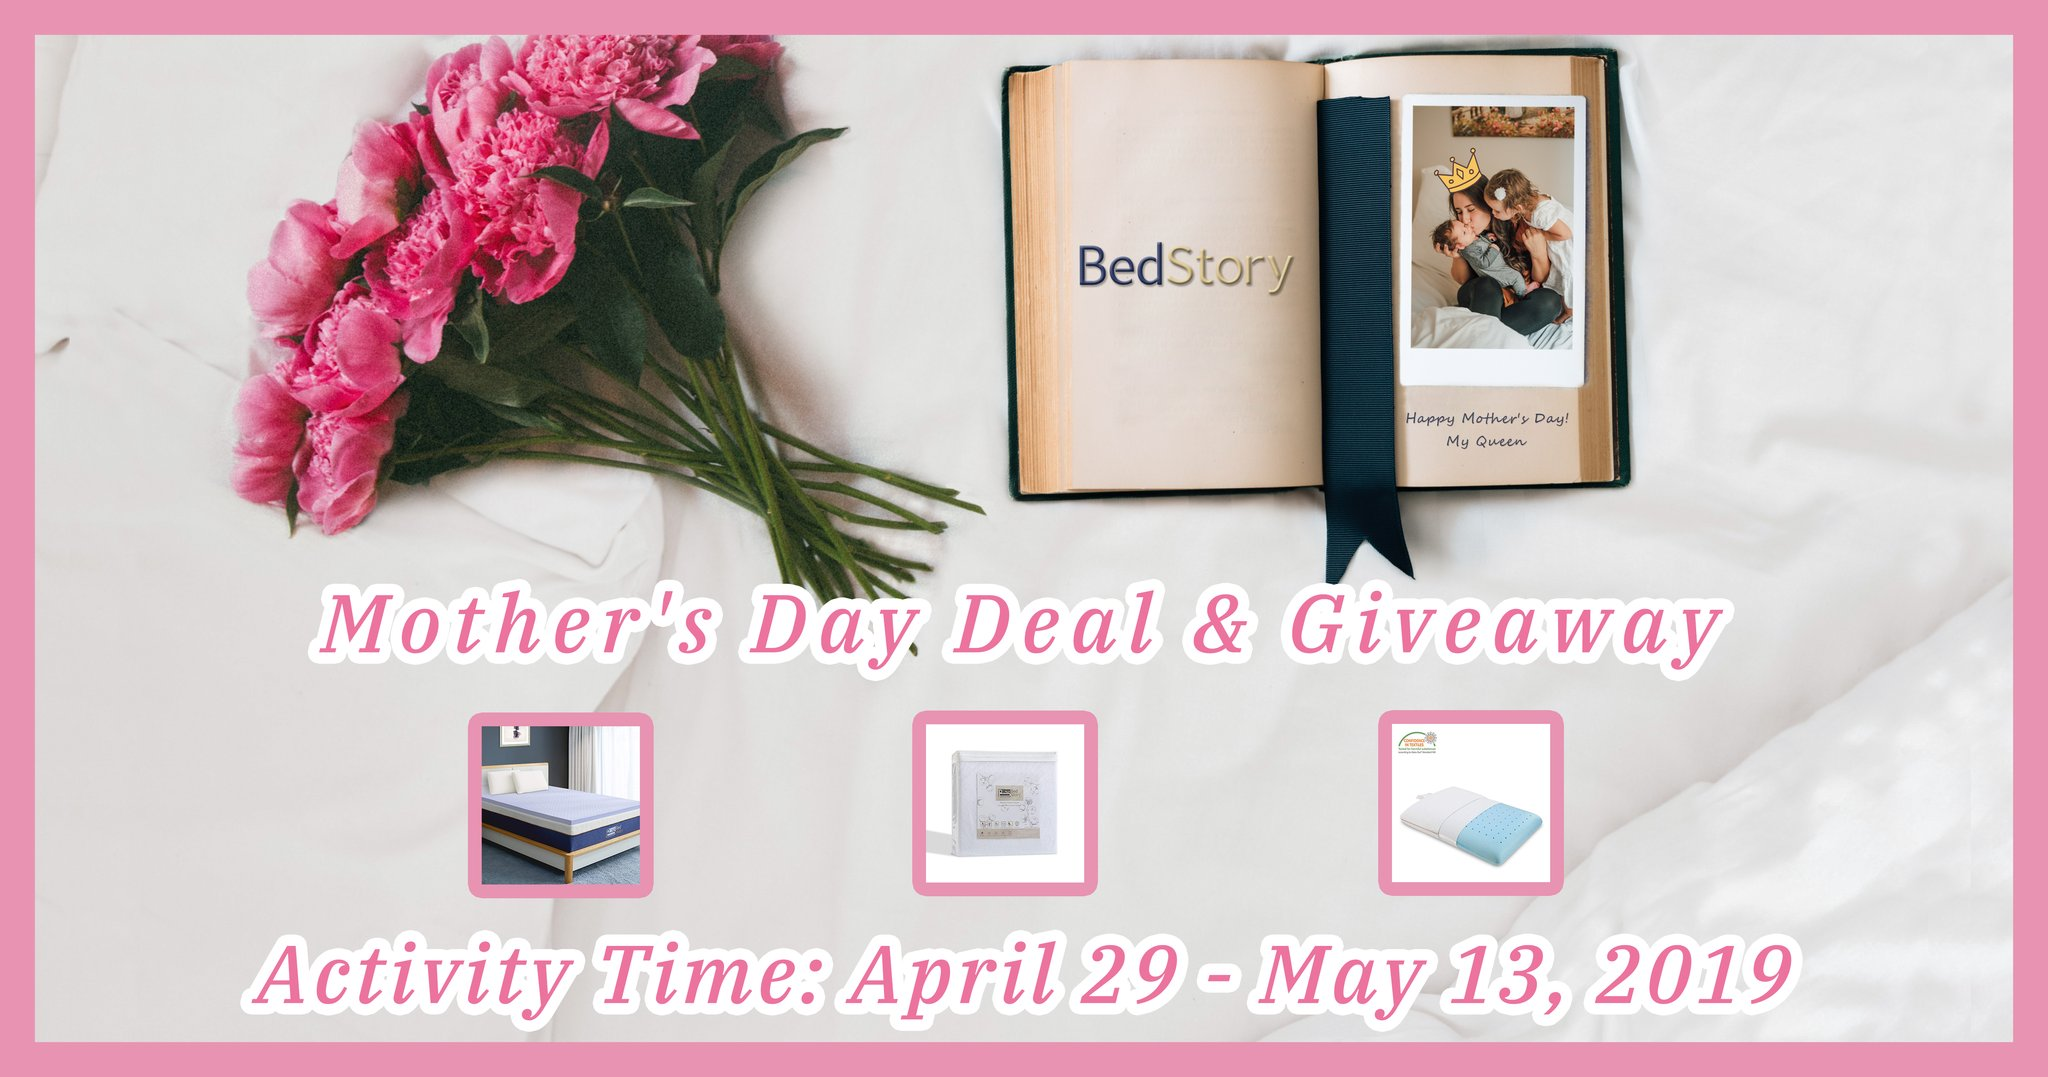 Enter for your chance to win a BedStory mattress, BedStory Memory Foam Mattress Topper and BedStory Gel Infused Memory Foam Pillows. BedStory's mattress protects against bed bugs, dust mites, pet dander, allergens and odors and hypoallergenic.